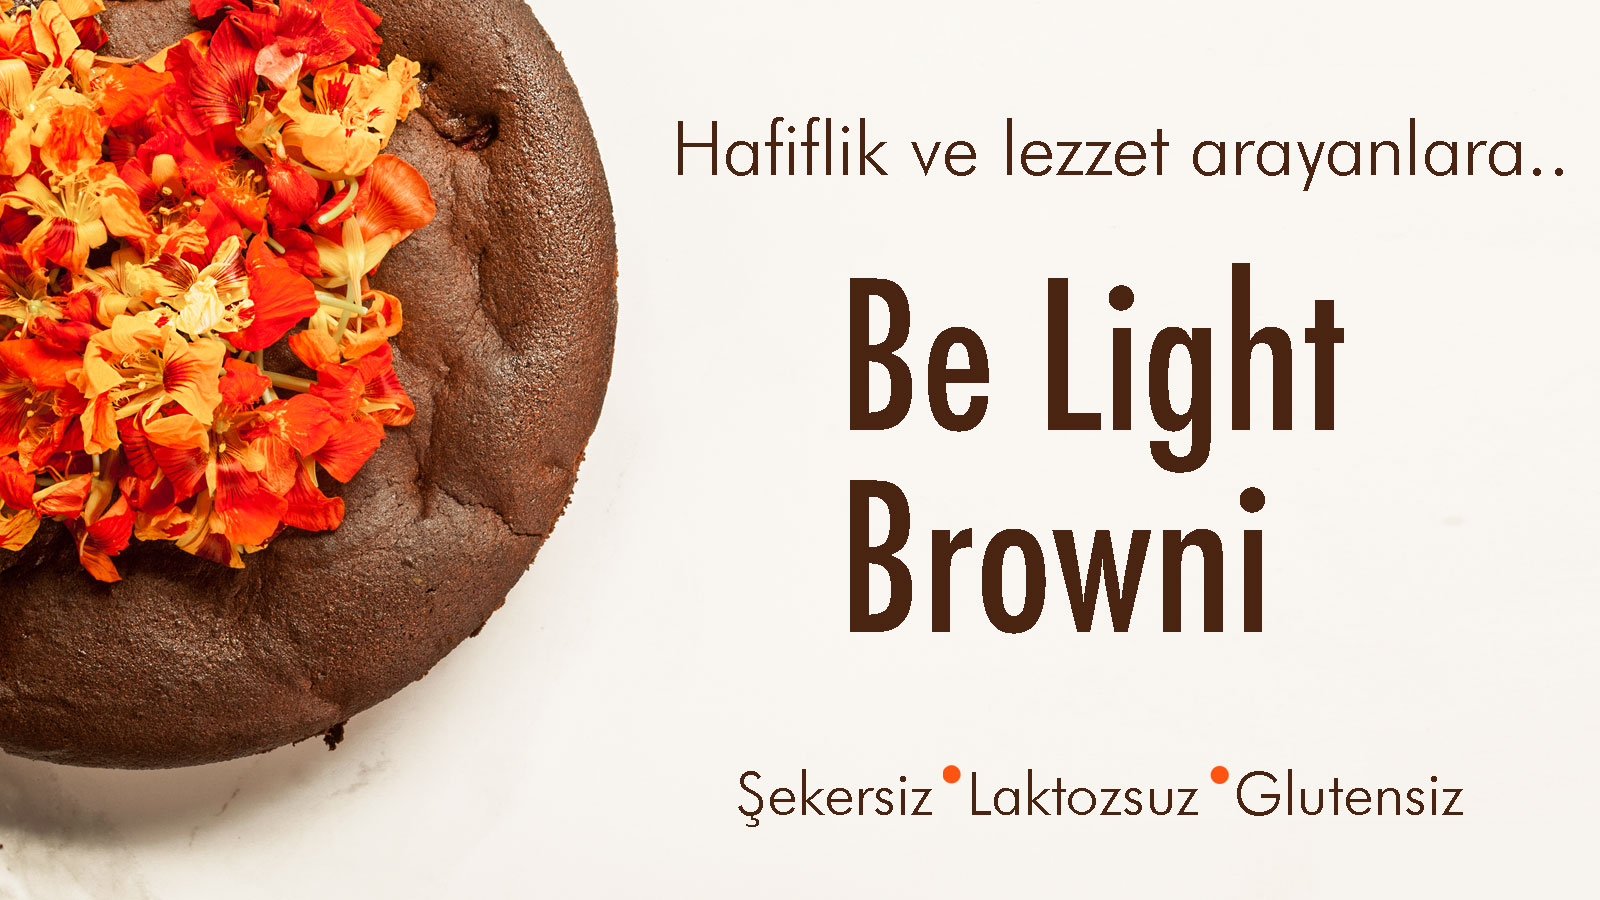 /images/content/mainpageslider/be-light-brownie-mobil.jpg